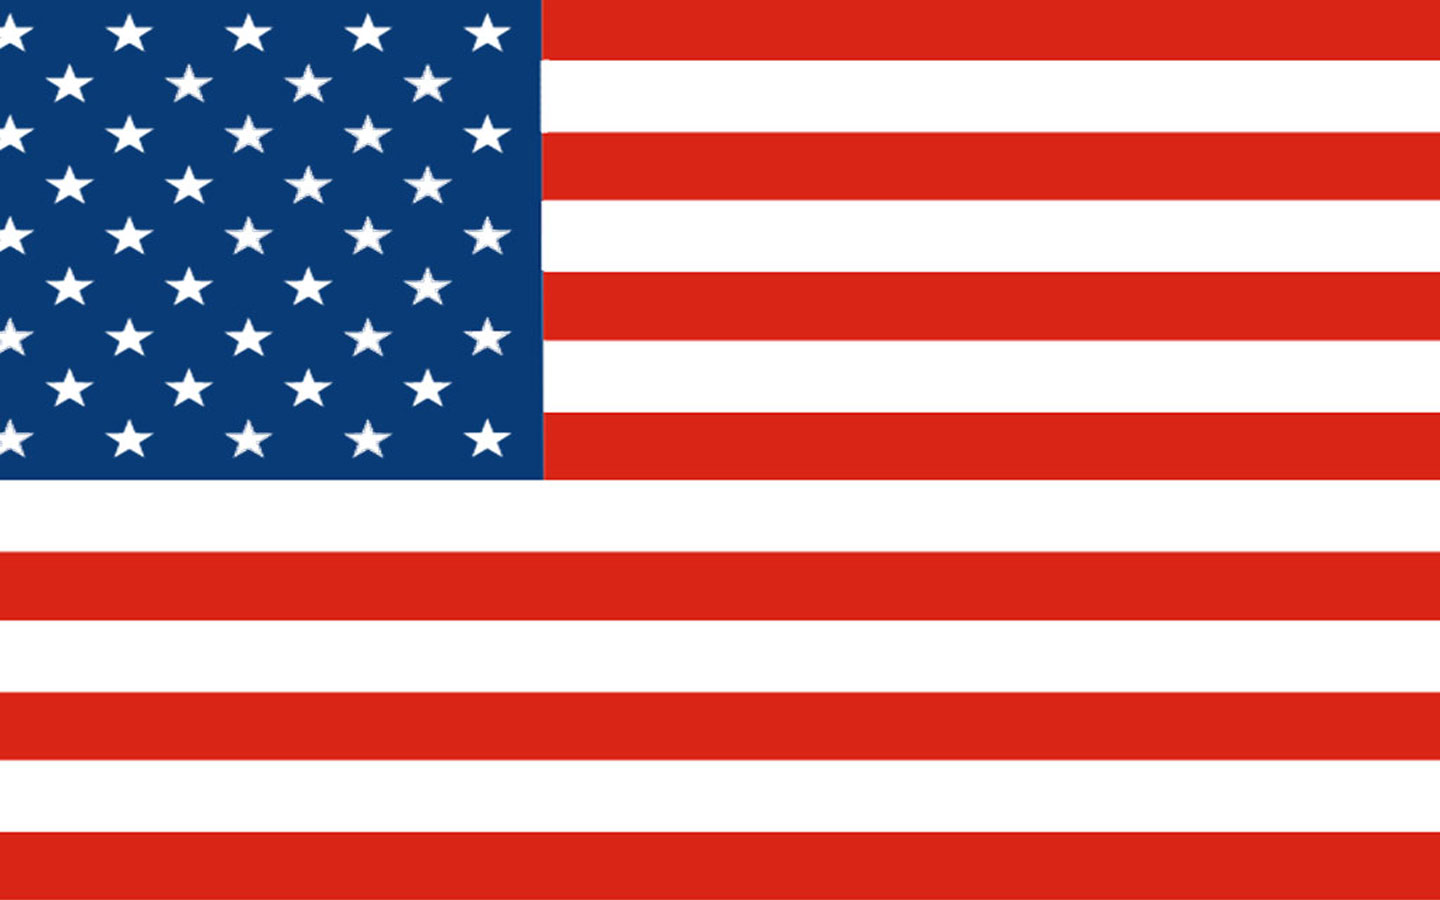 United State of America (USA) Flag Pictures.